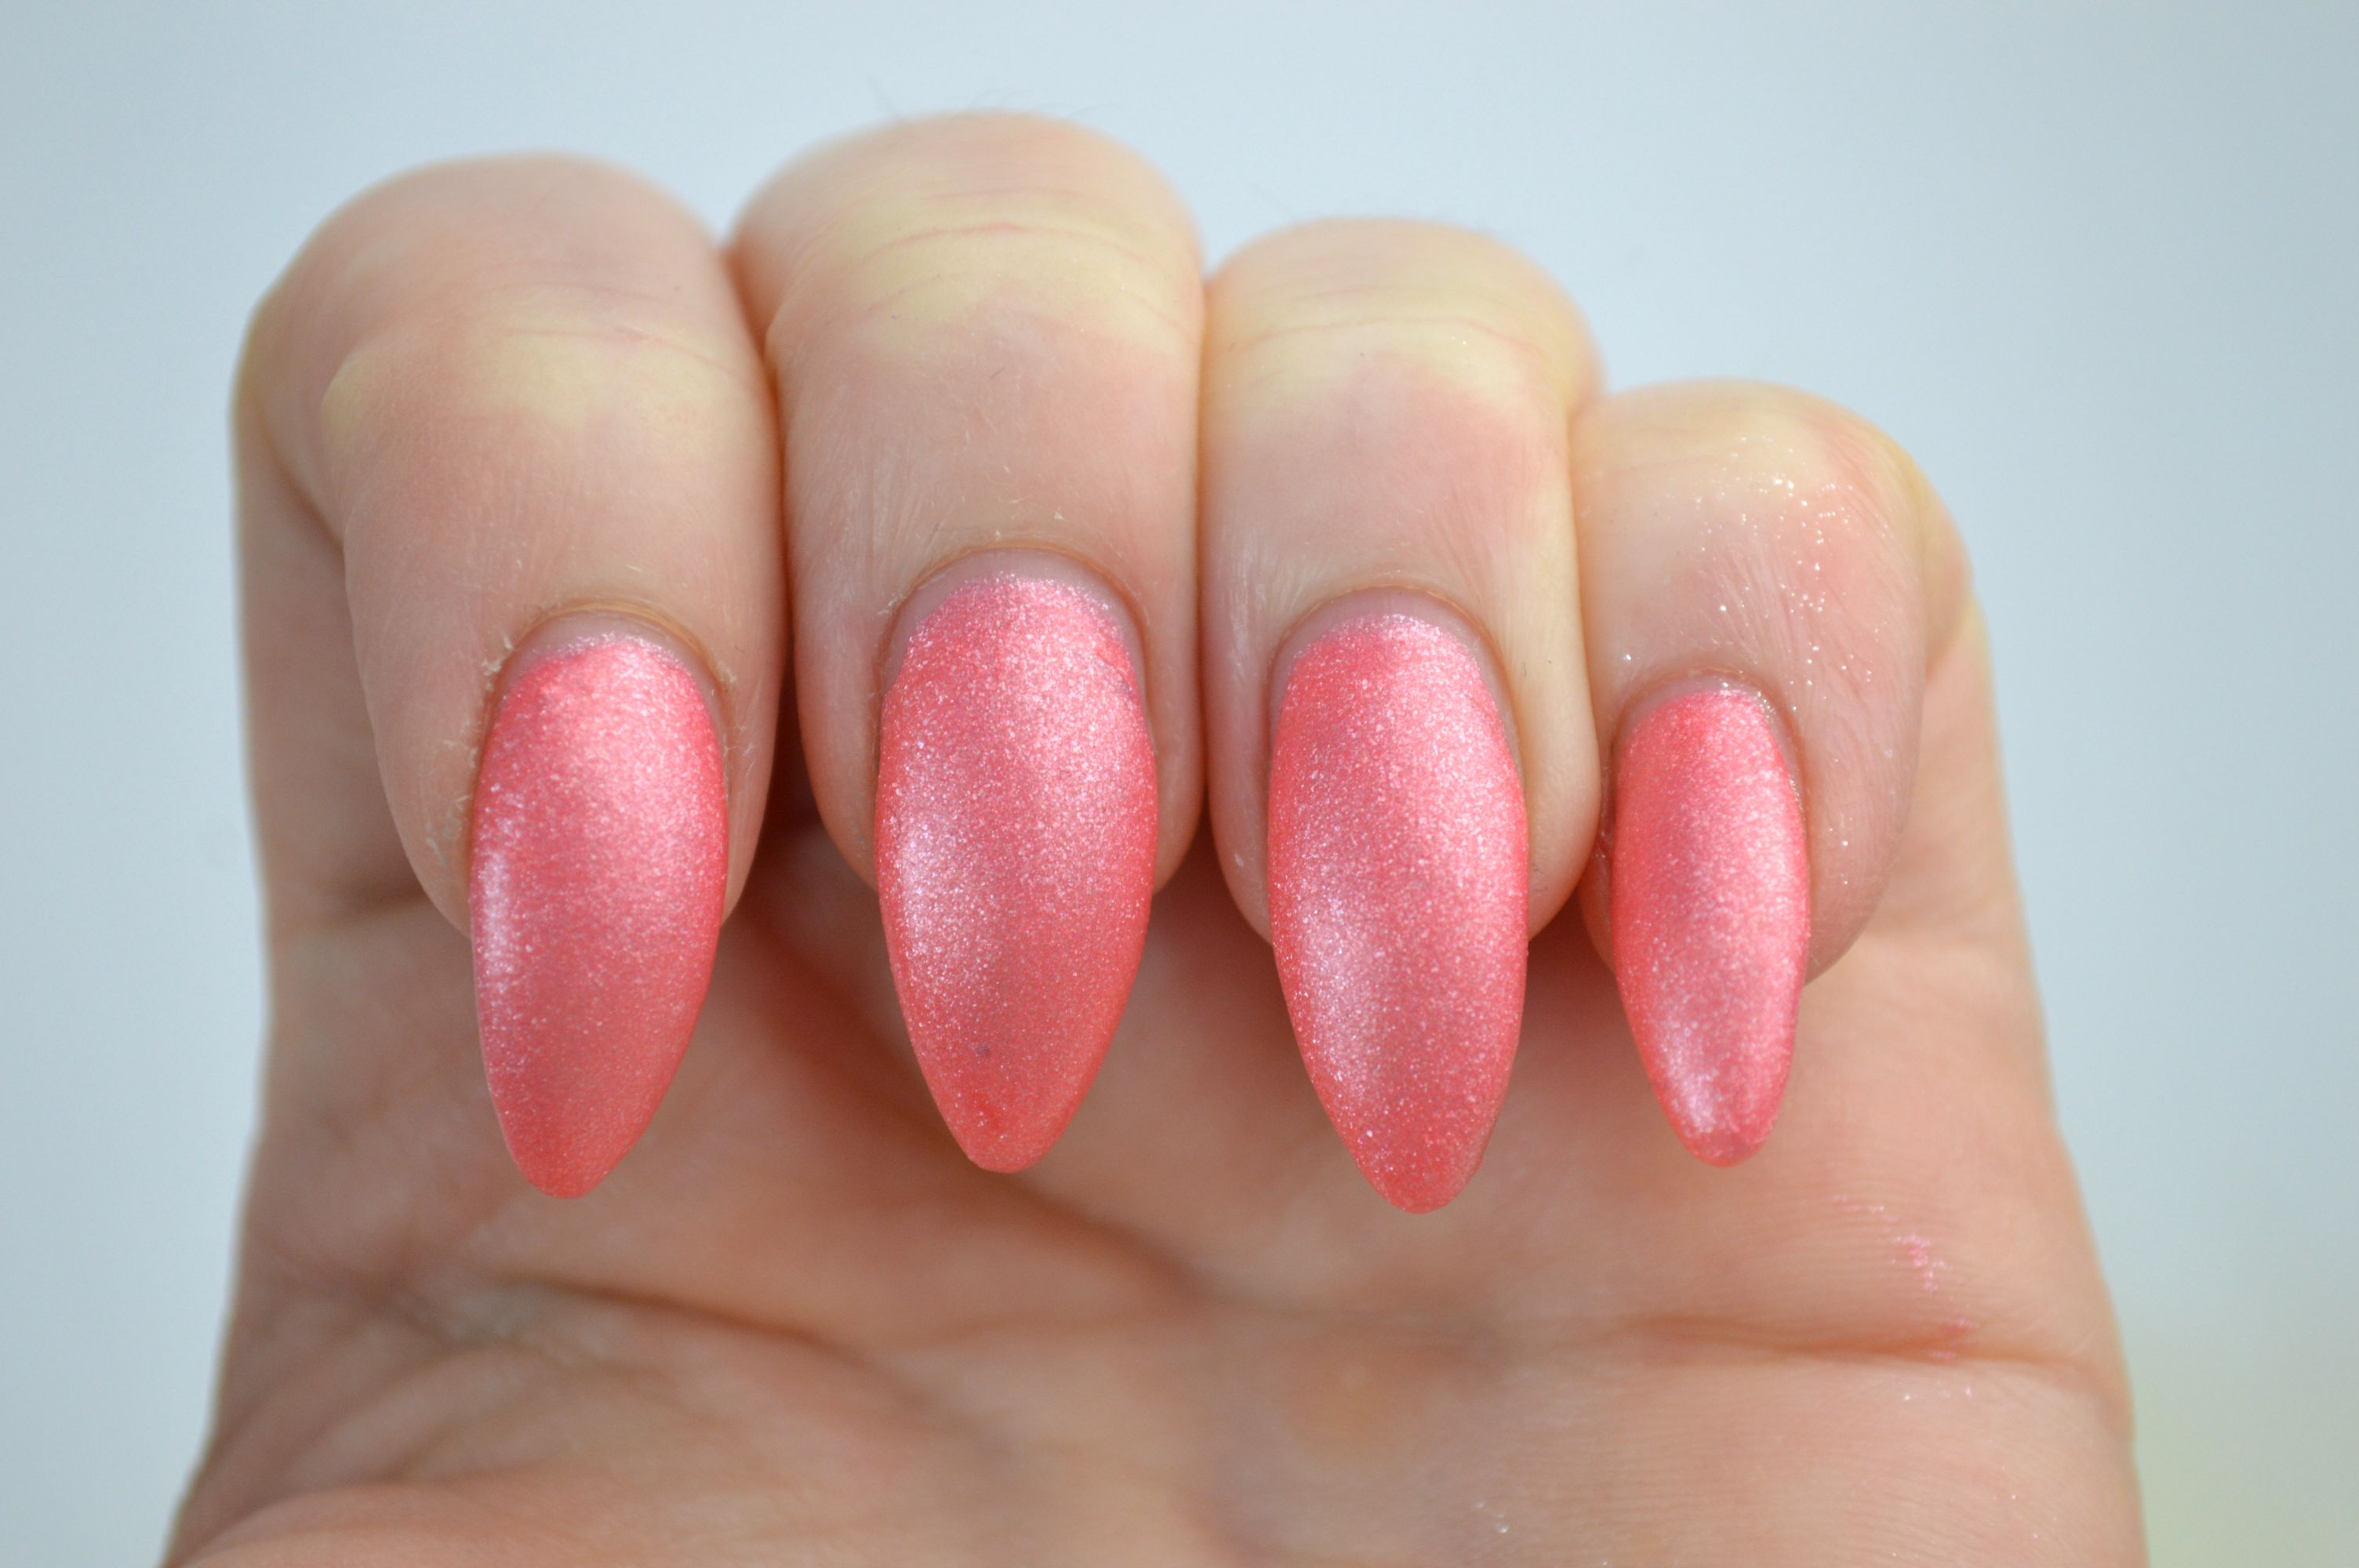 Sally_Hansen_Satin_Glam_Chic_Pink_Review_Nagellack